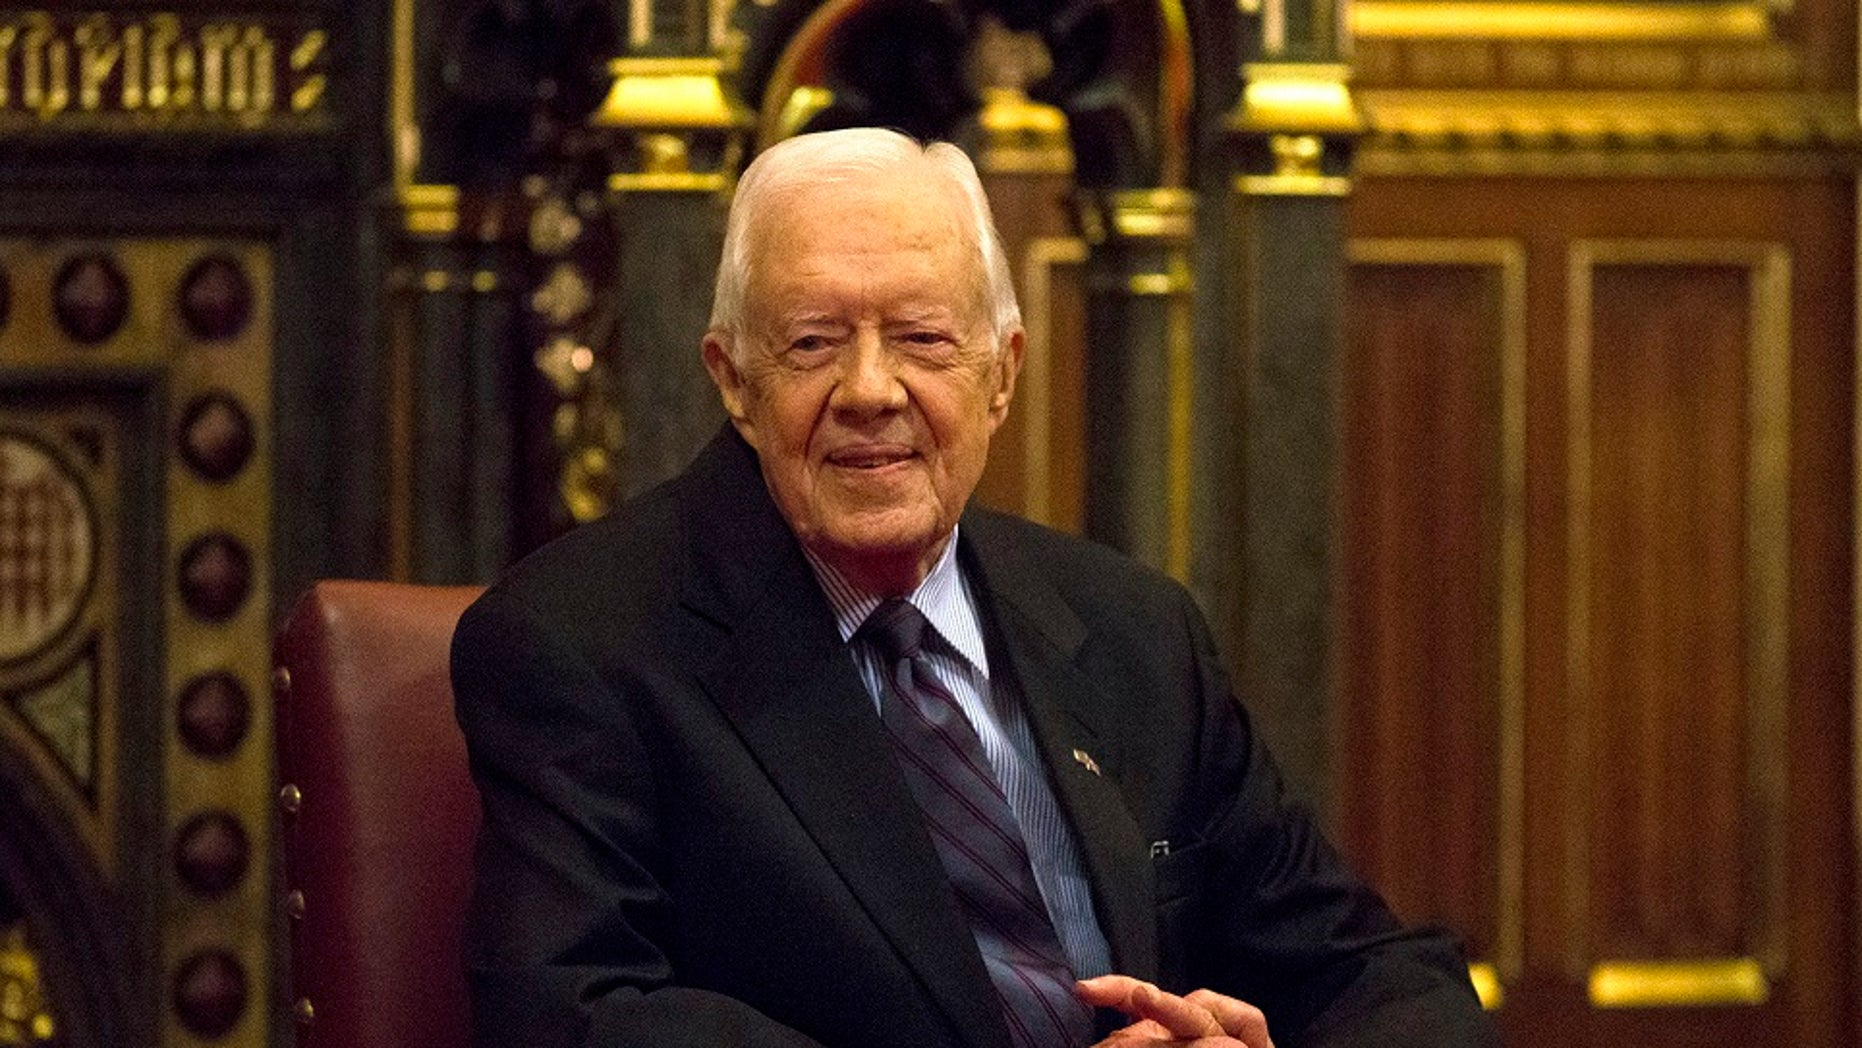 Former U.S. President Jimmy Carter's statue in South Dakota was vandalized, officials said.